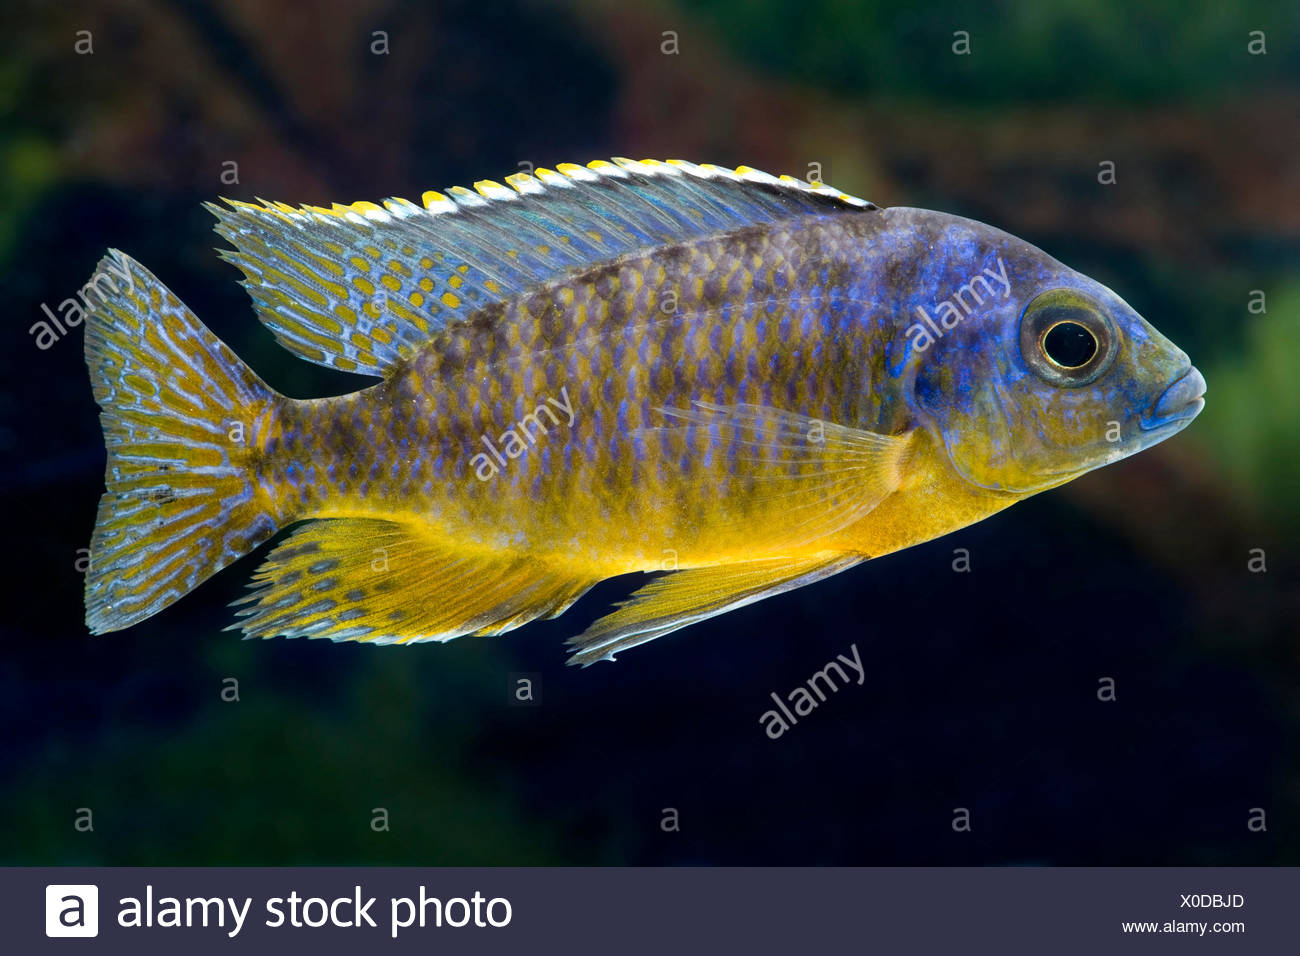 Malawi Cichlid (Protomelas virgatus), portrait Photo Stock